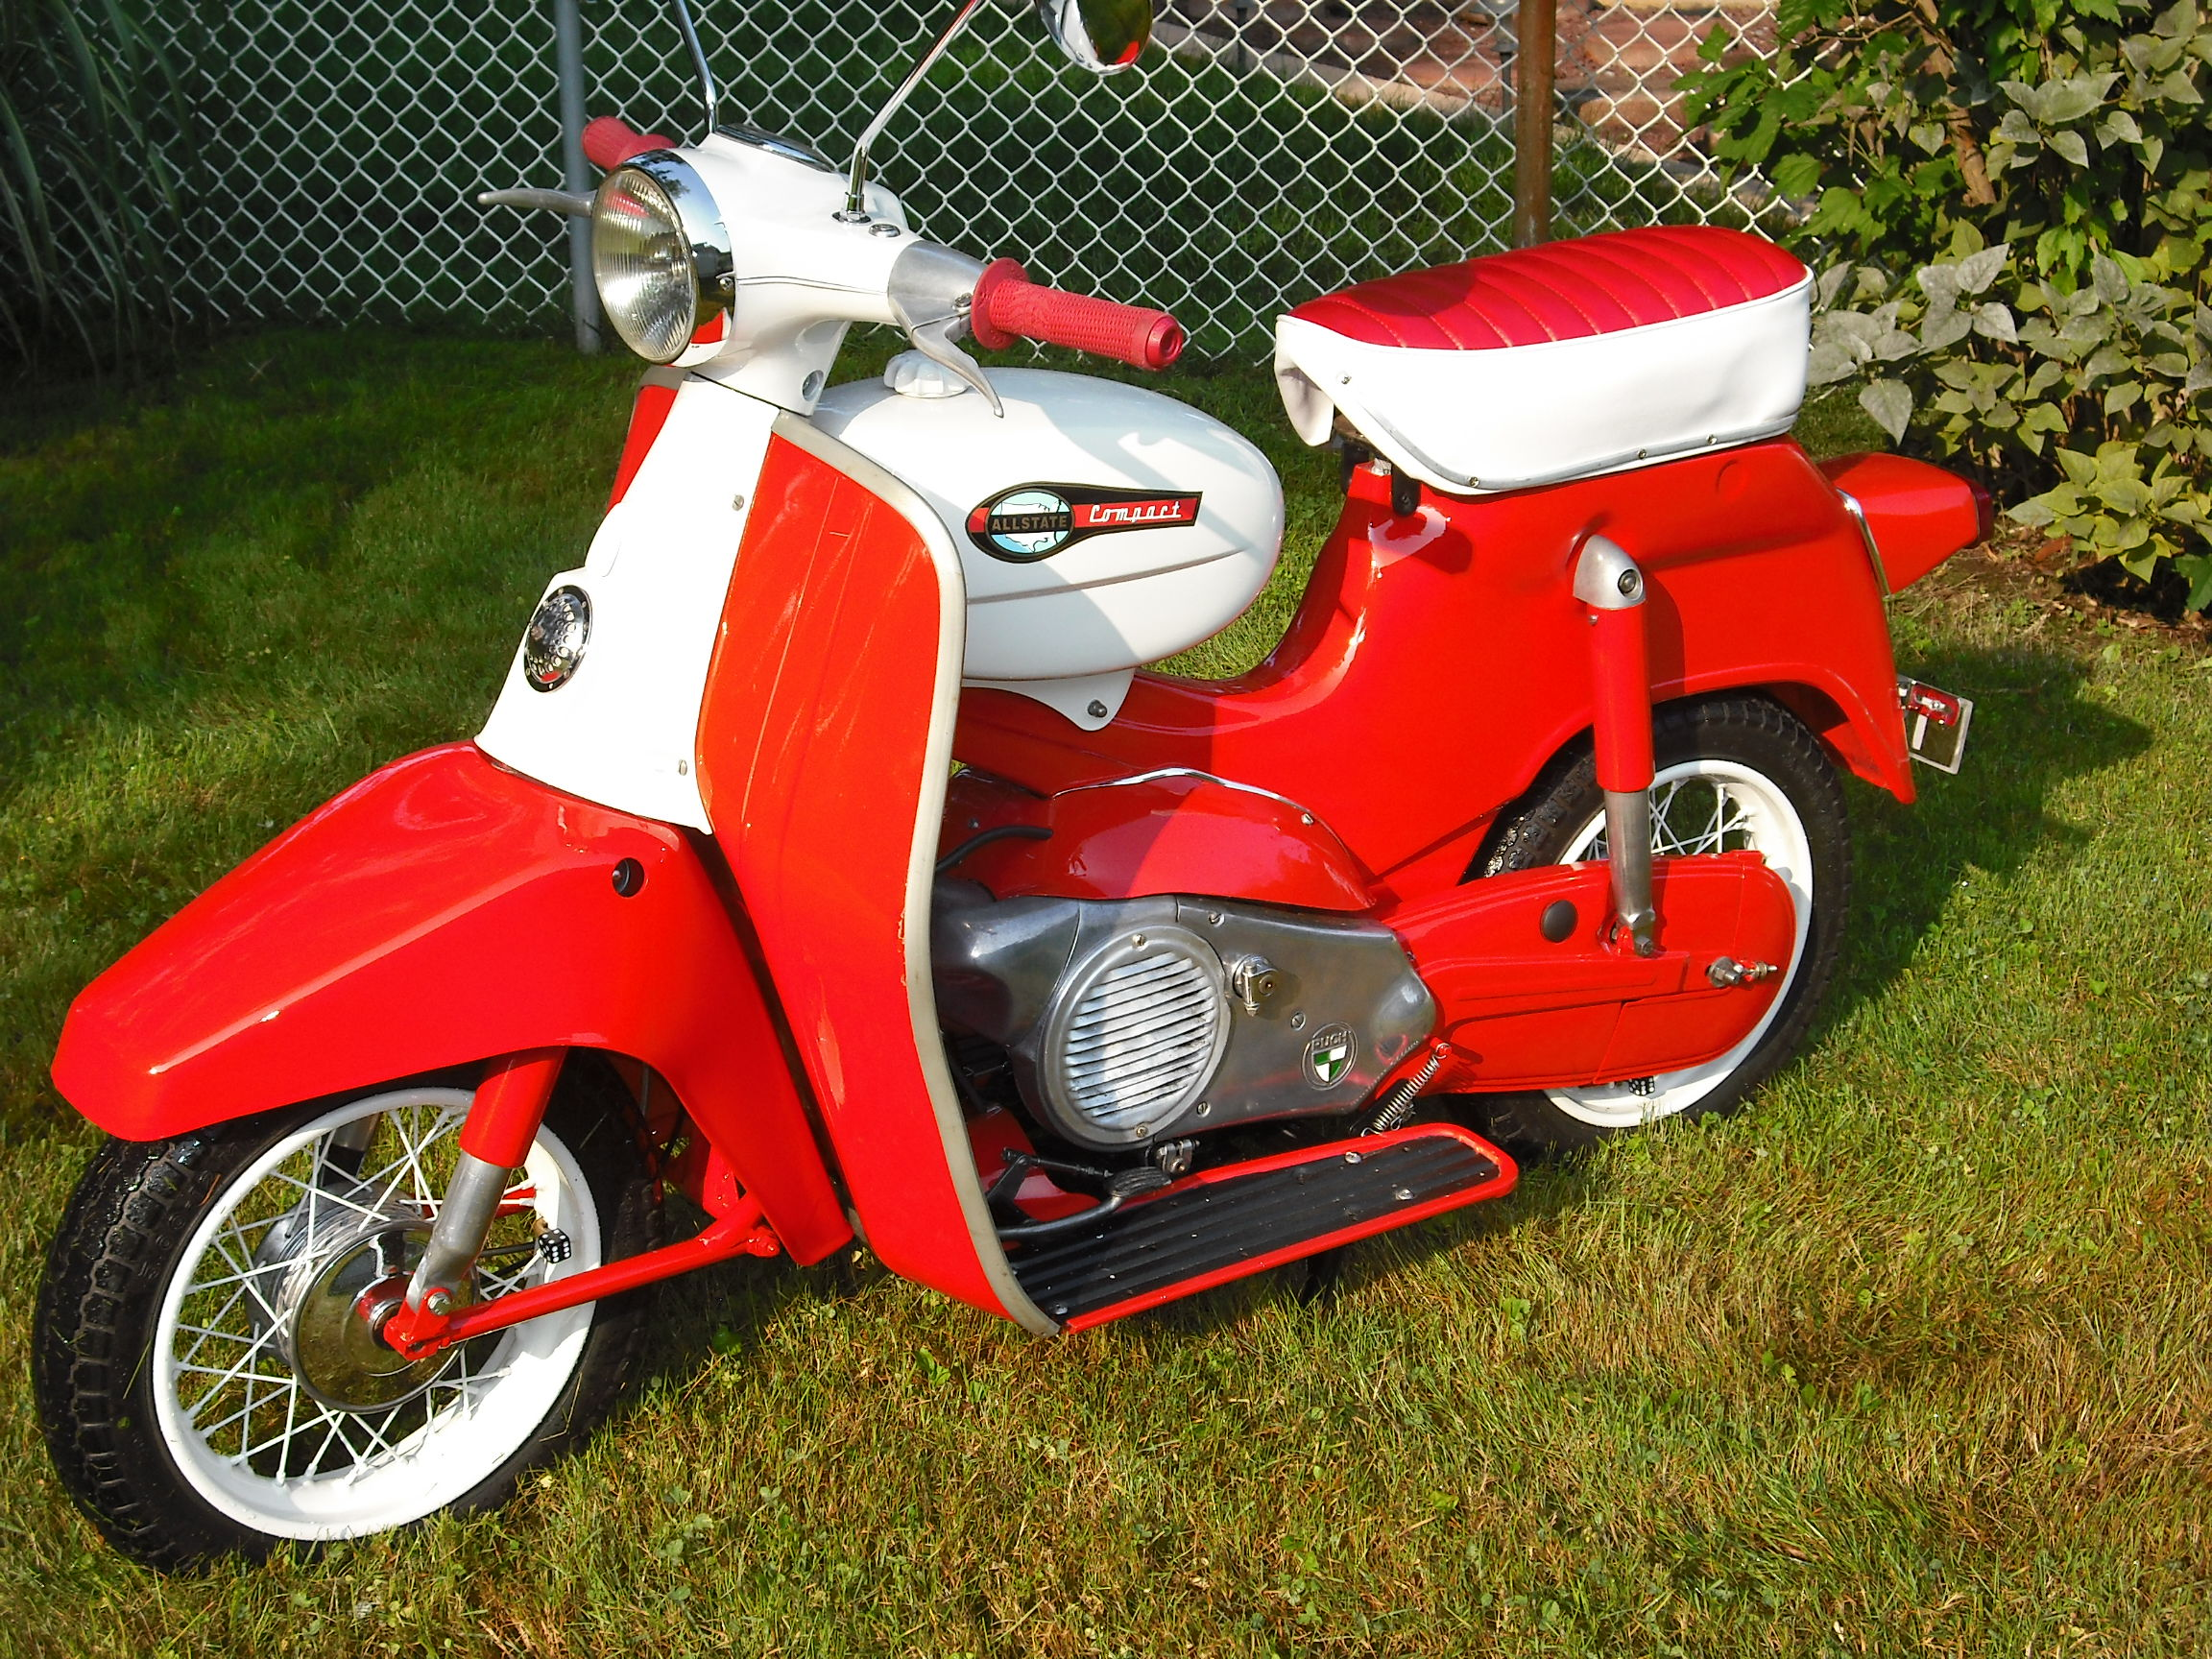 1965 sears allstate compact — Moped Army